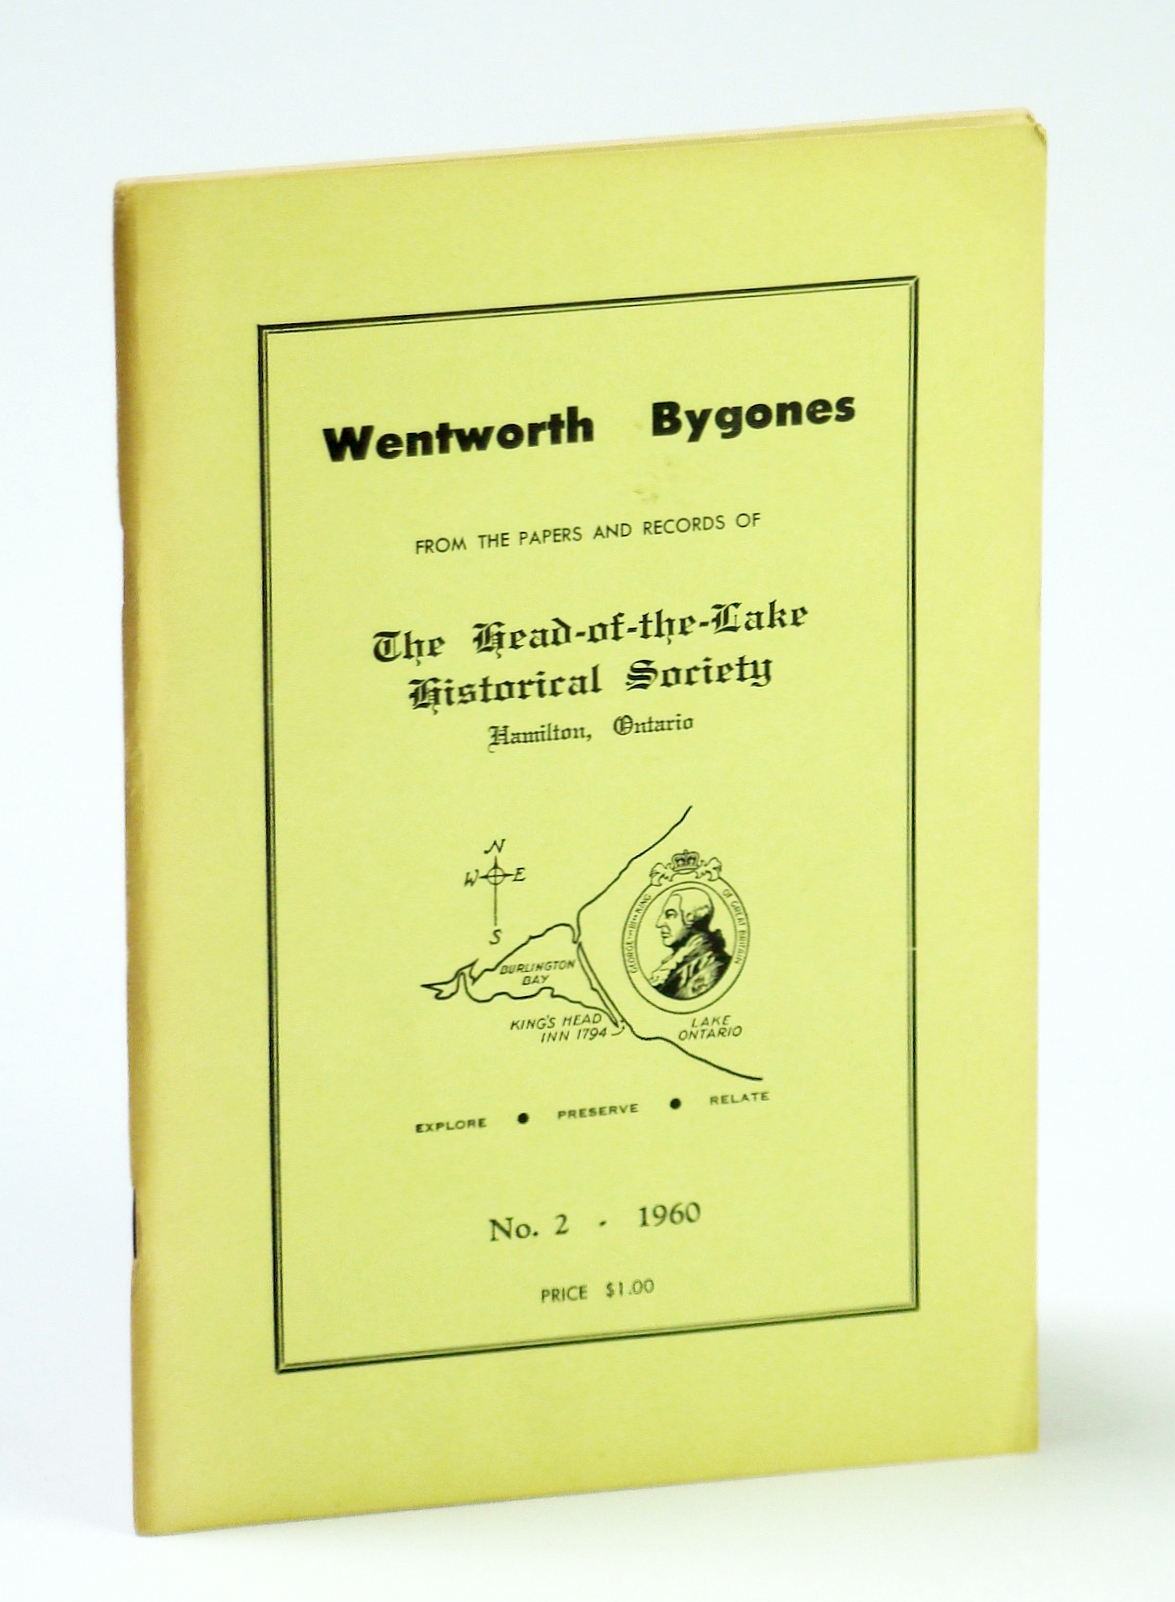 Image for Wentworth Bygones: From the Papers and Records of The Head-of-the-Lake Historical Society, No. 2 (Two) 1960